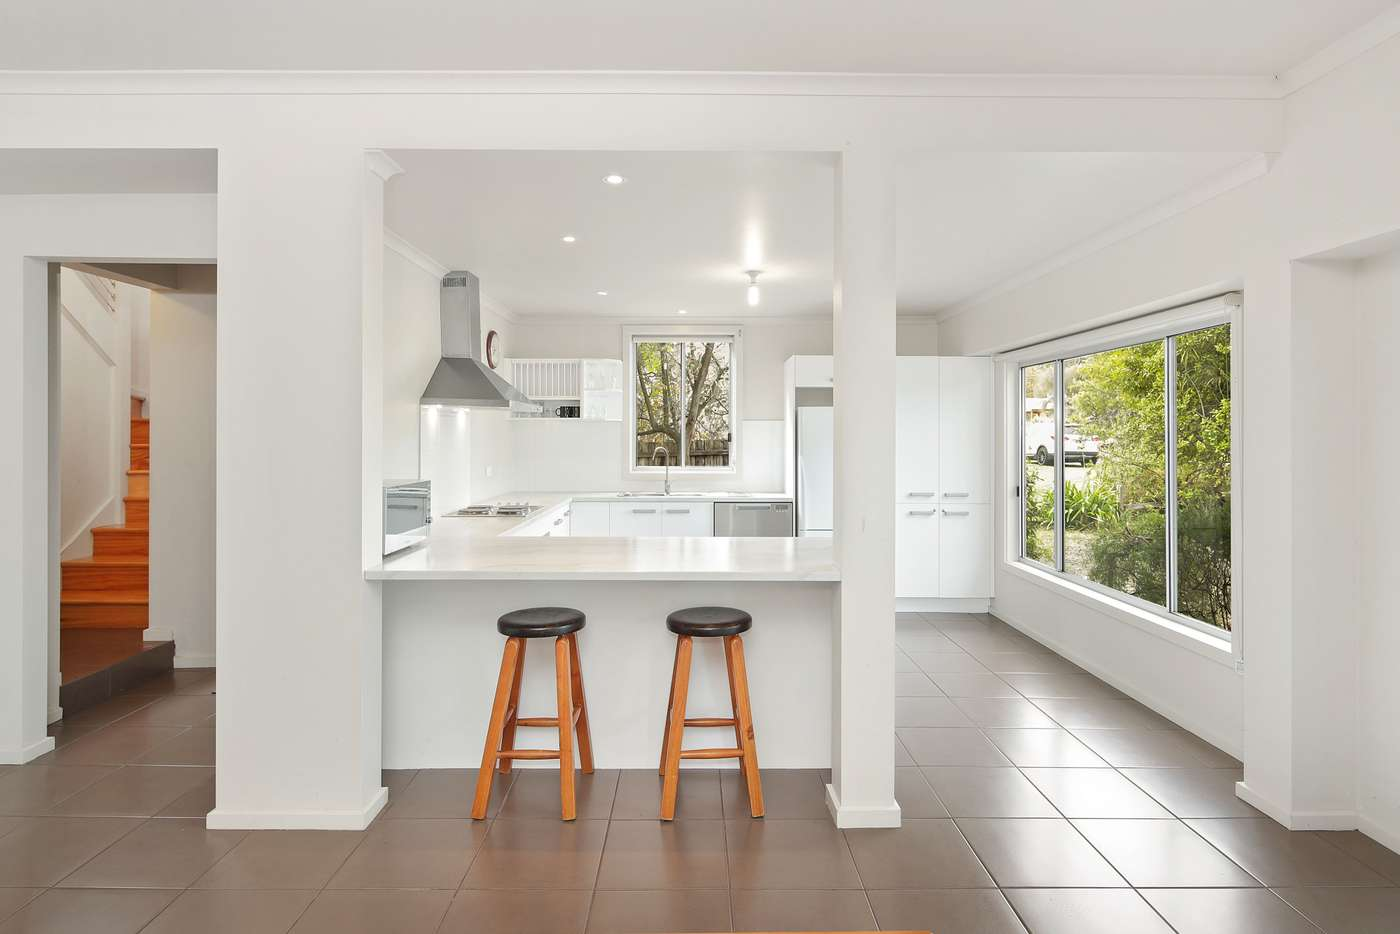 Fifth view of Homely house listing, 30 Koala Street, Cowes VIC 3922